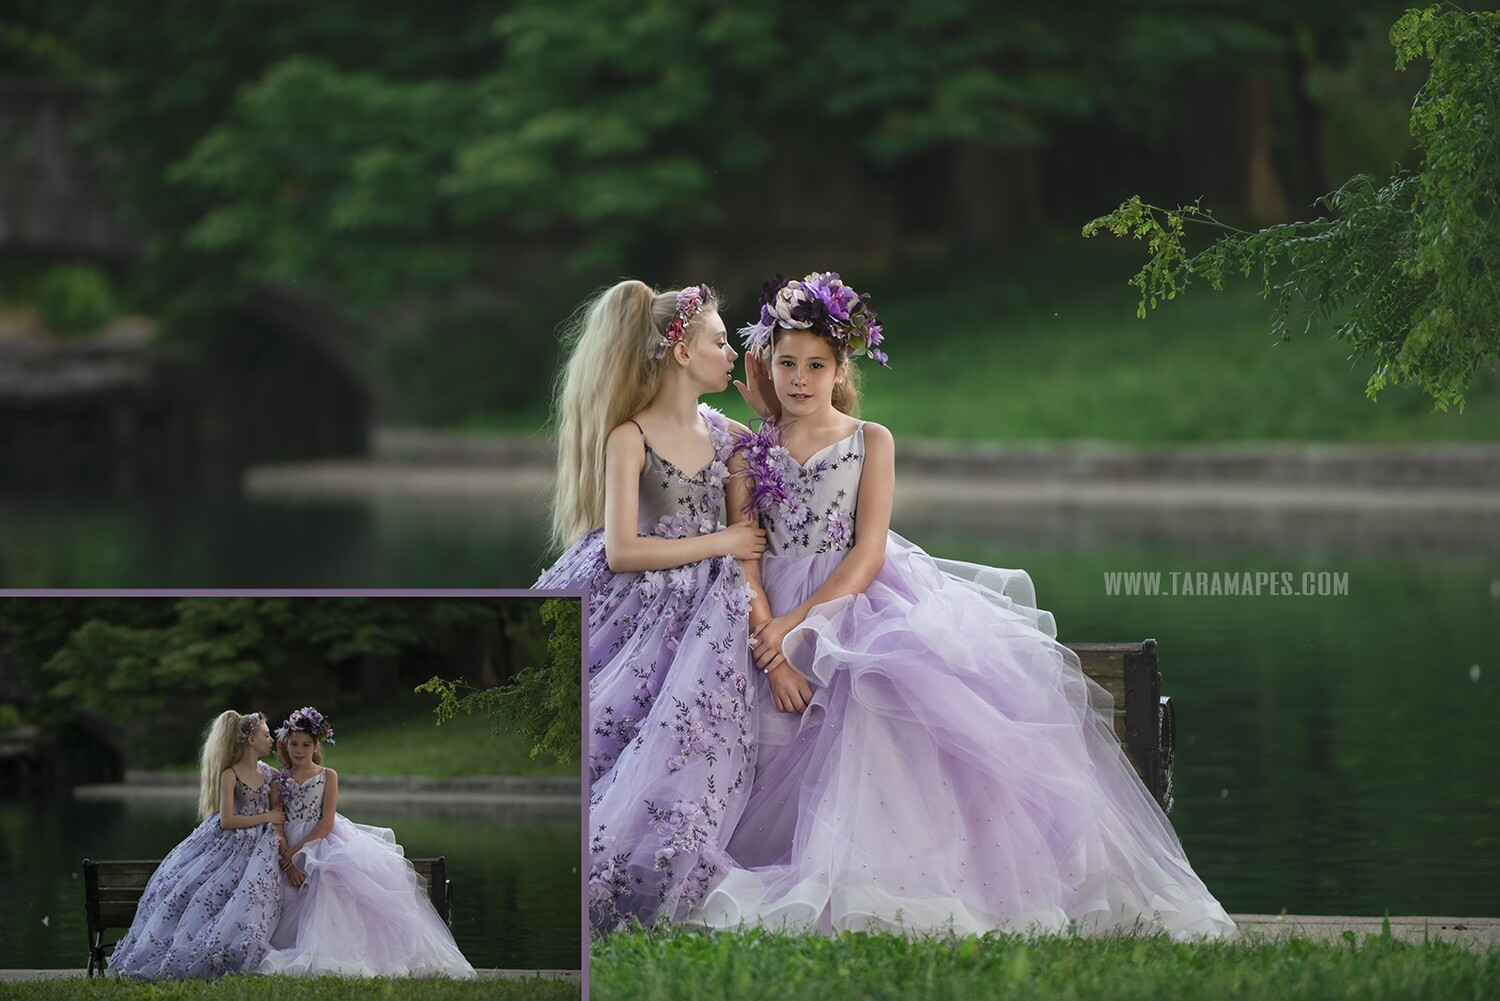 Violet Secrets Photoshop Edit Tutorial by Tara Mapes